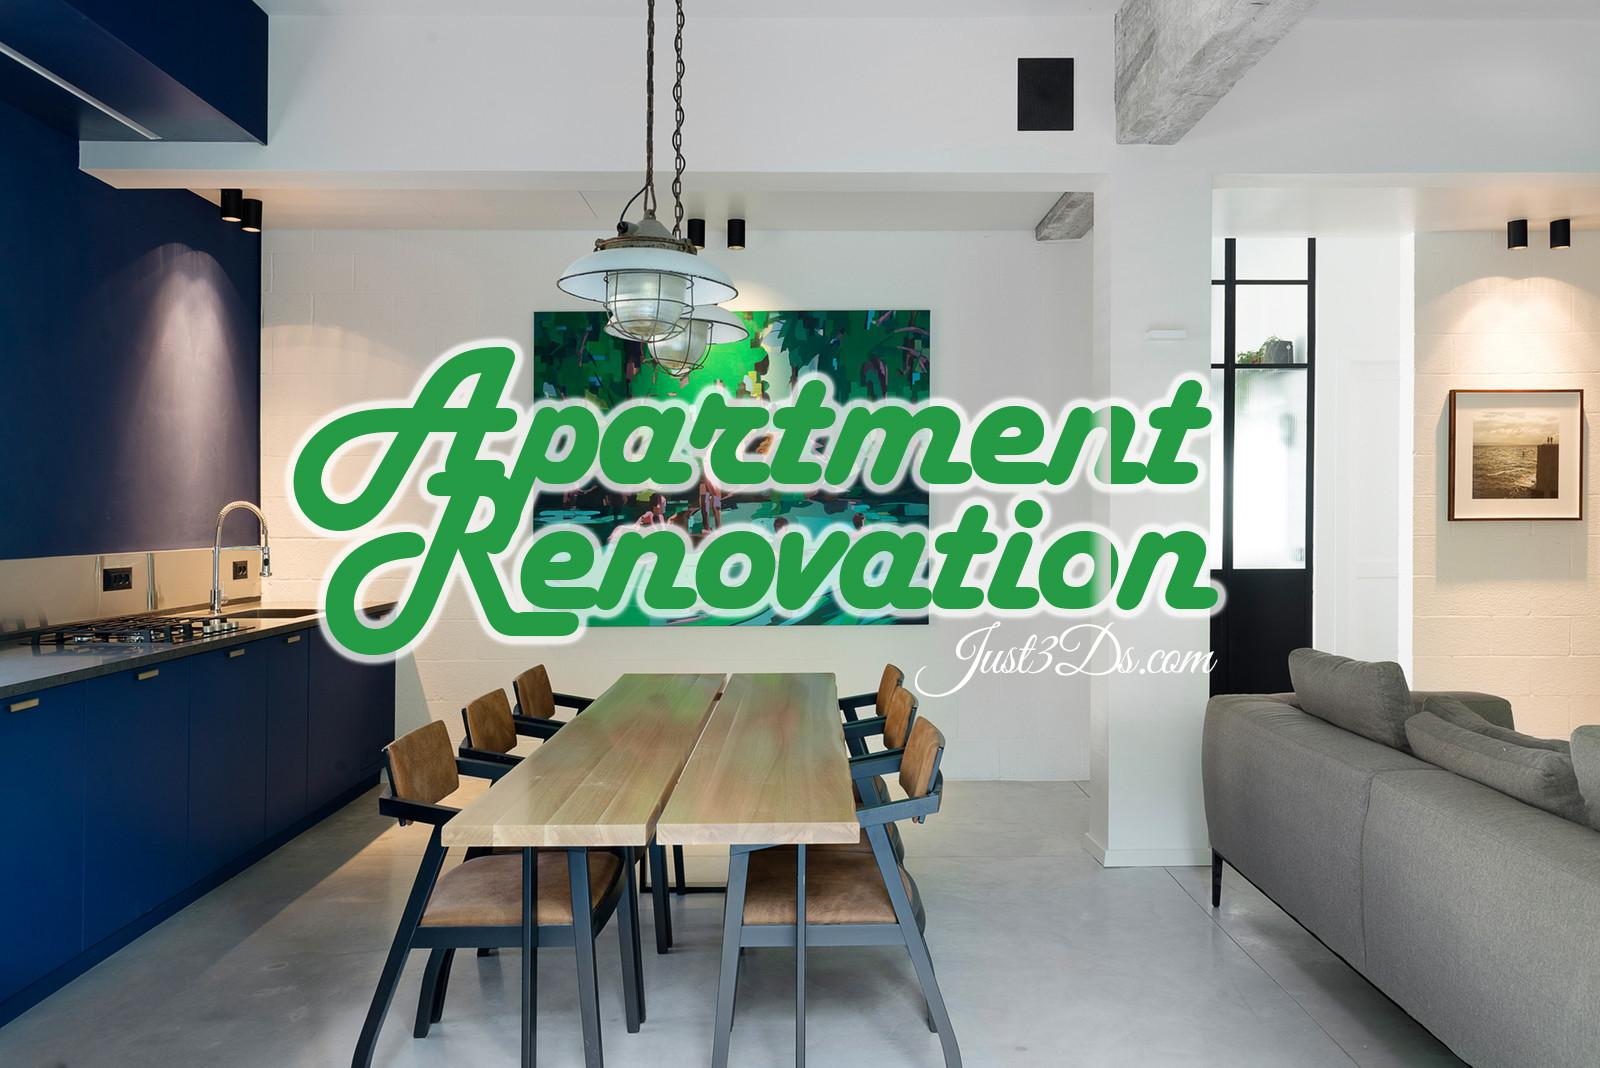 Apartment Renovation Israel Just3ds